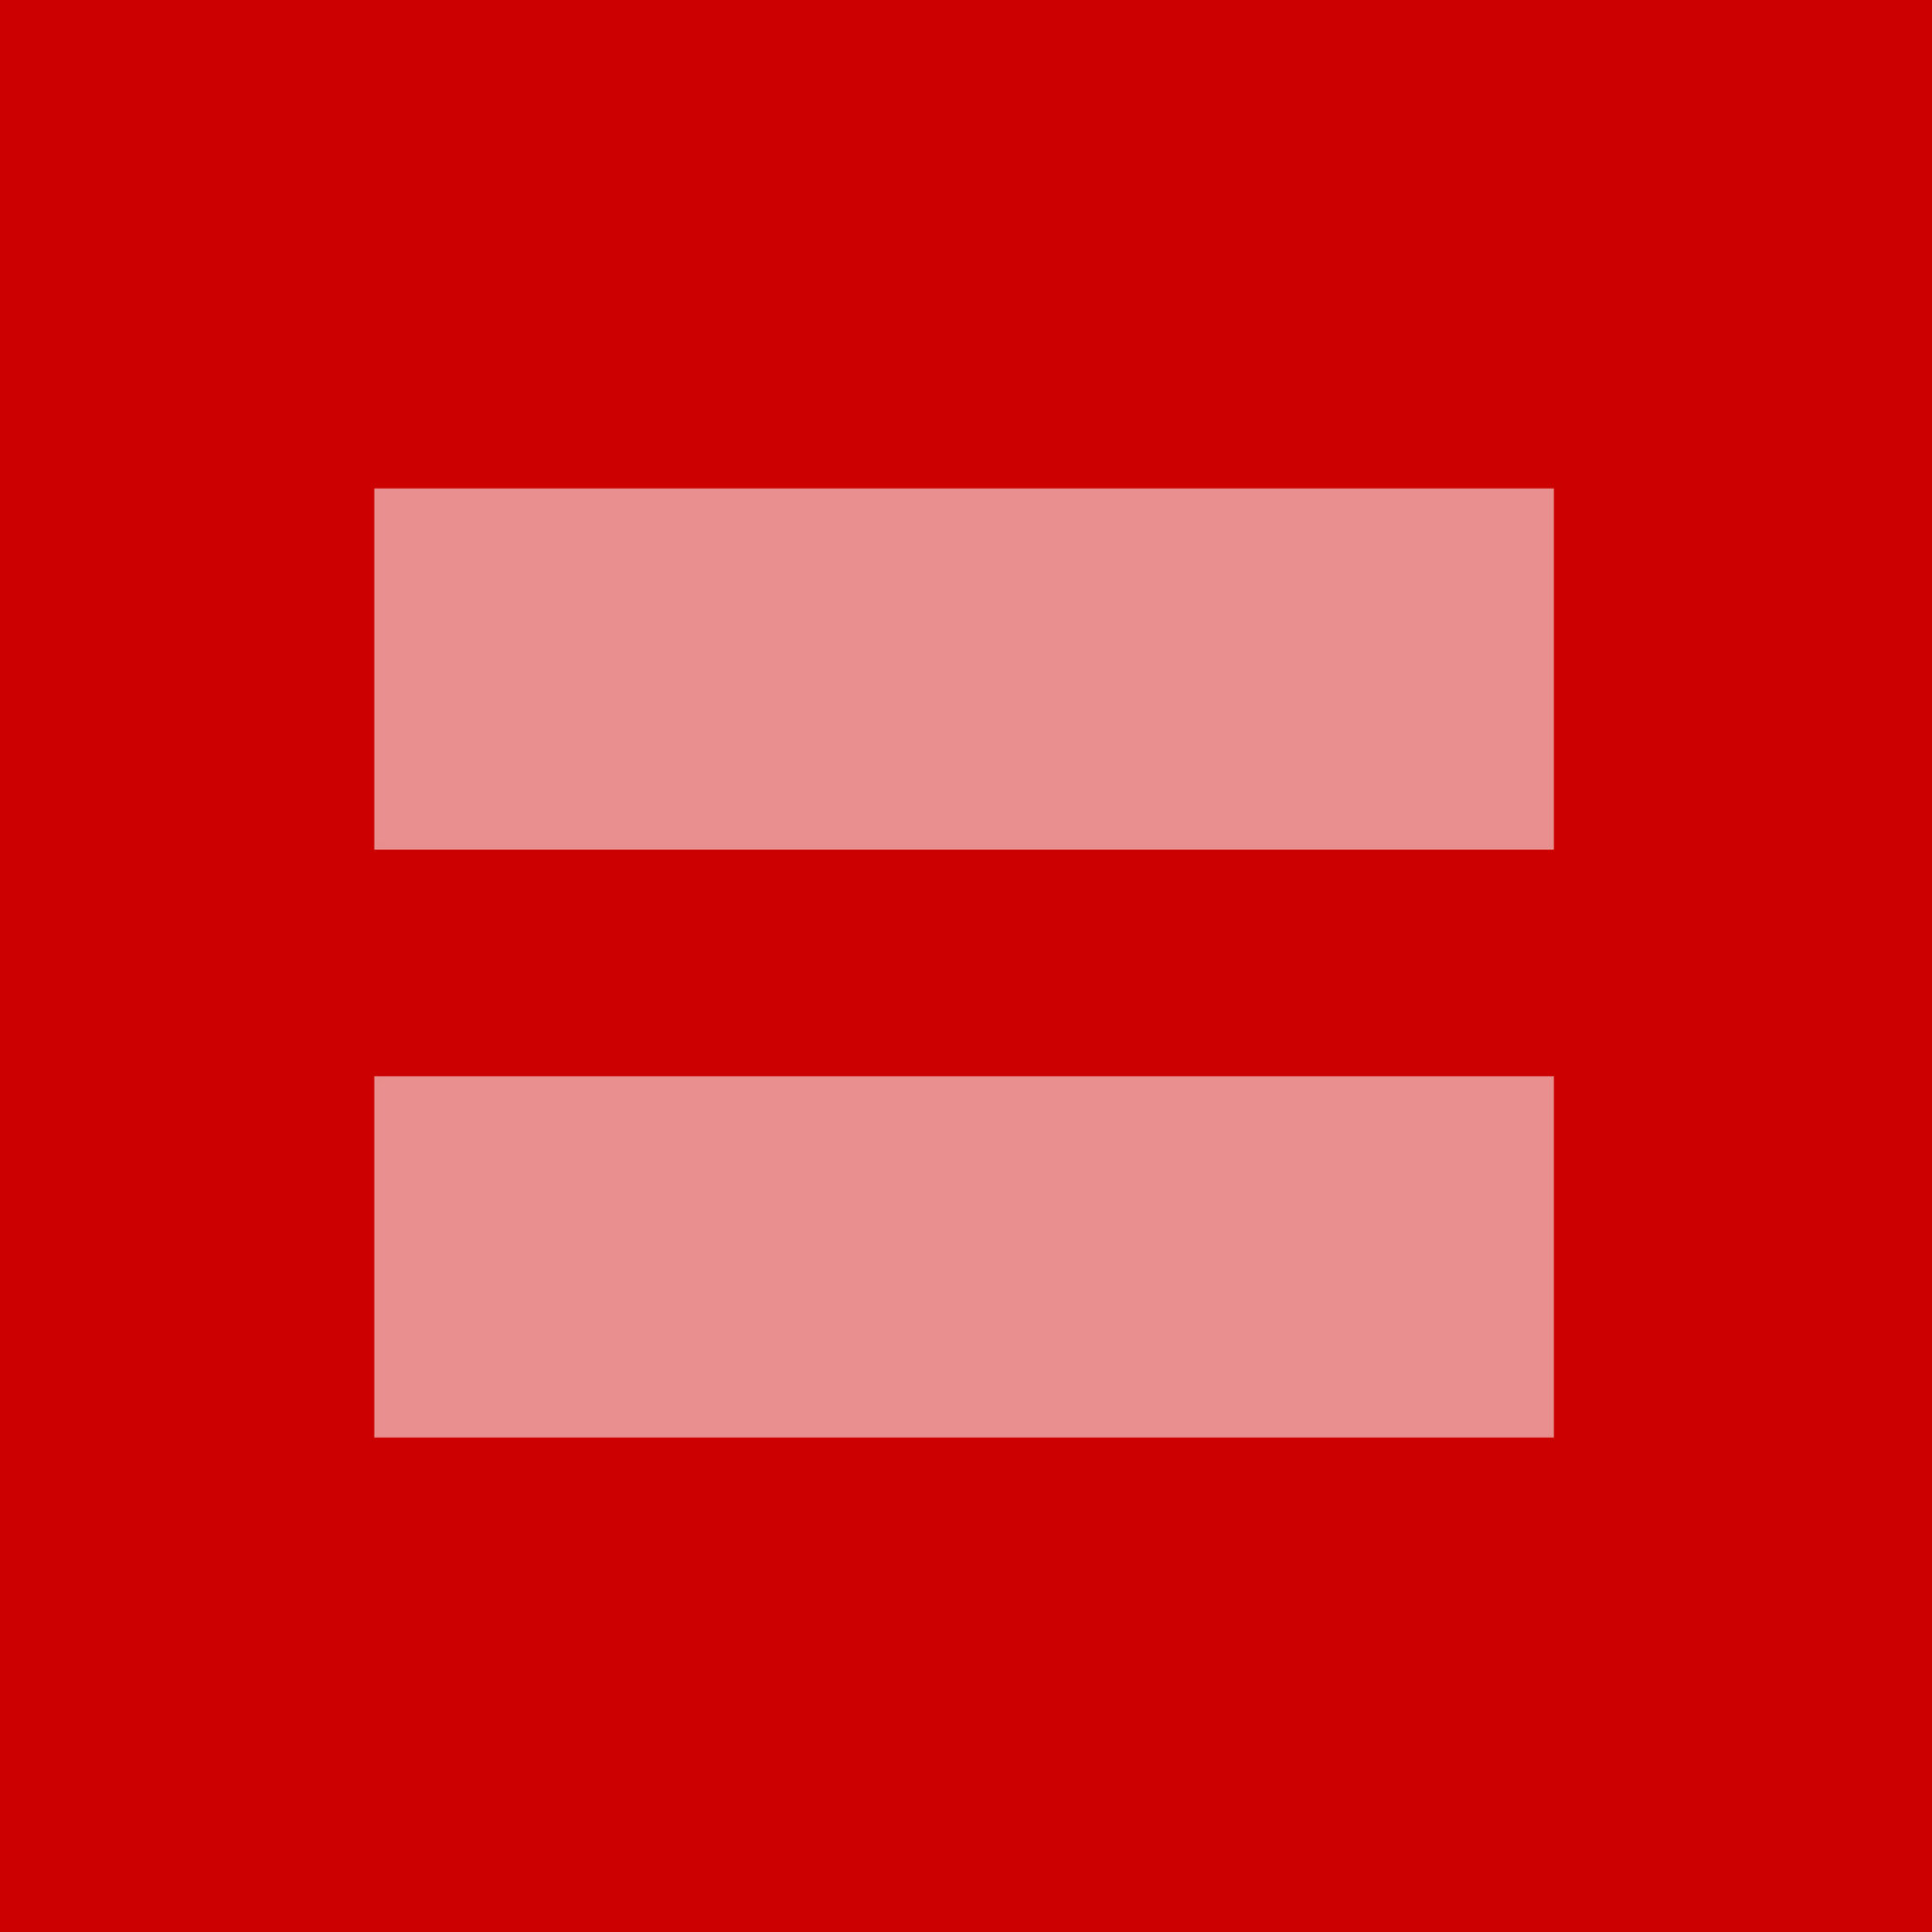 Red Equal Signs Marriage Equalityjpg 0fababd8b362bf7c